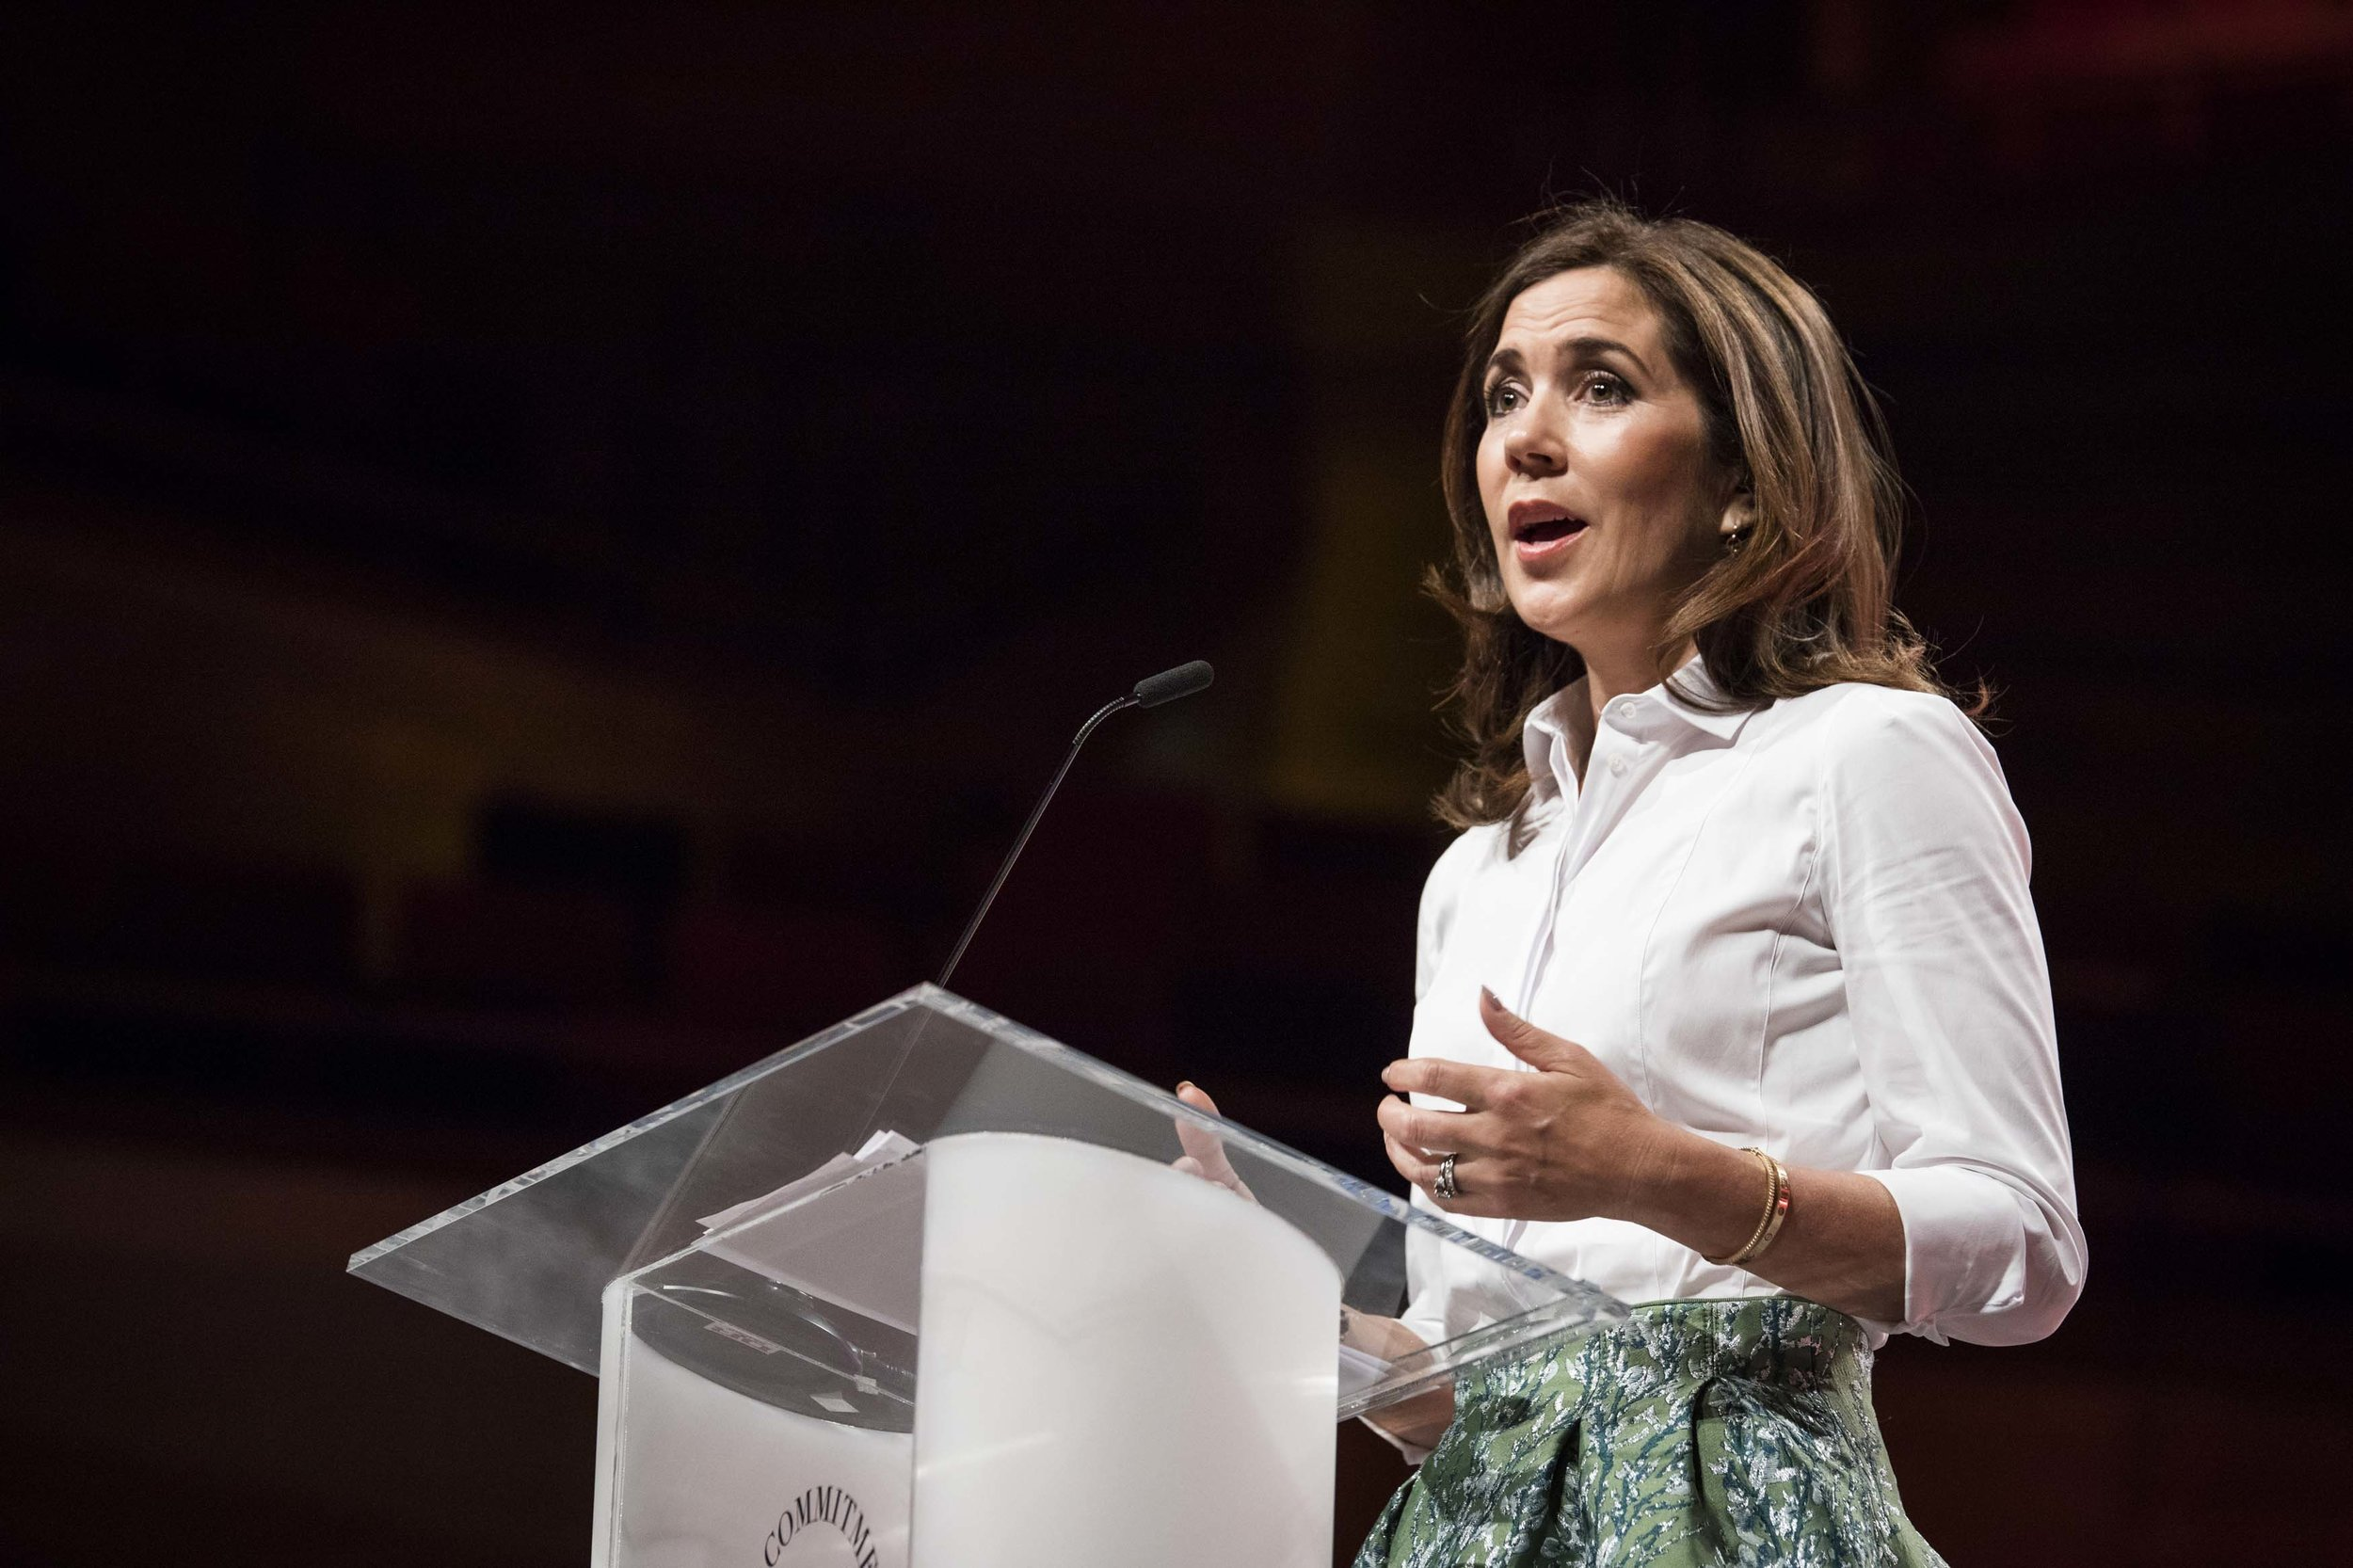 The Crown Princess of Denmark, Mary. Photo Credit: Global Fashion Agenda / Copenhagen Fashion Summit